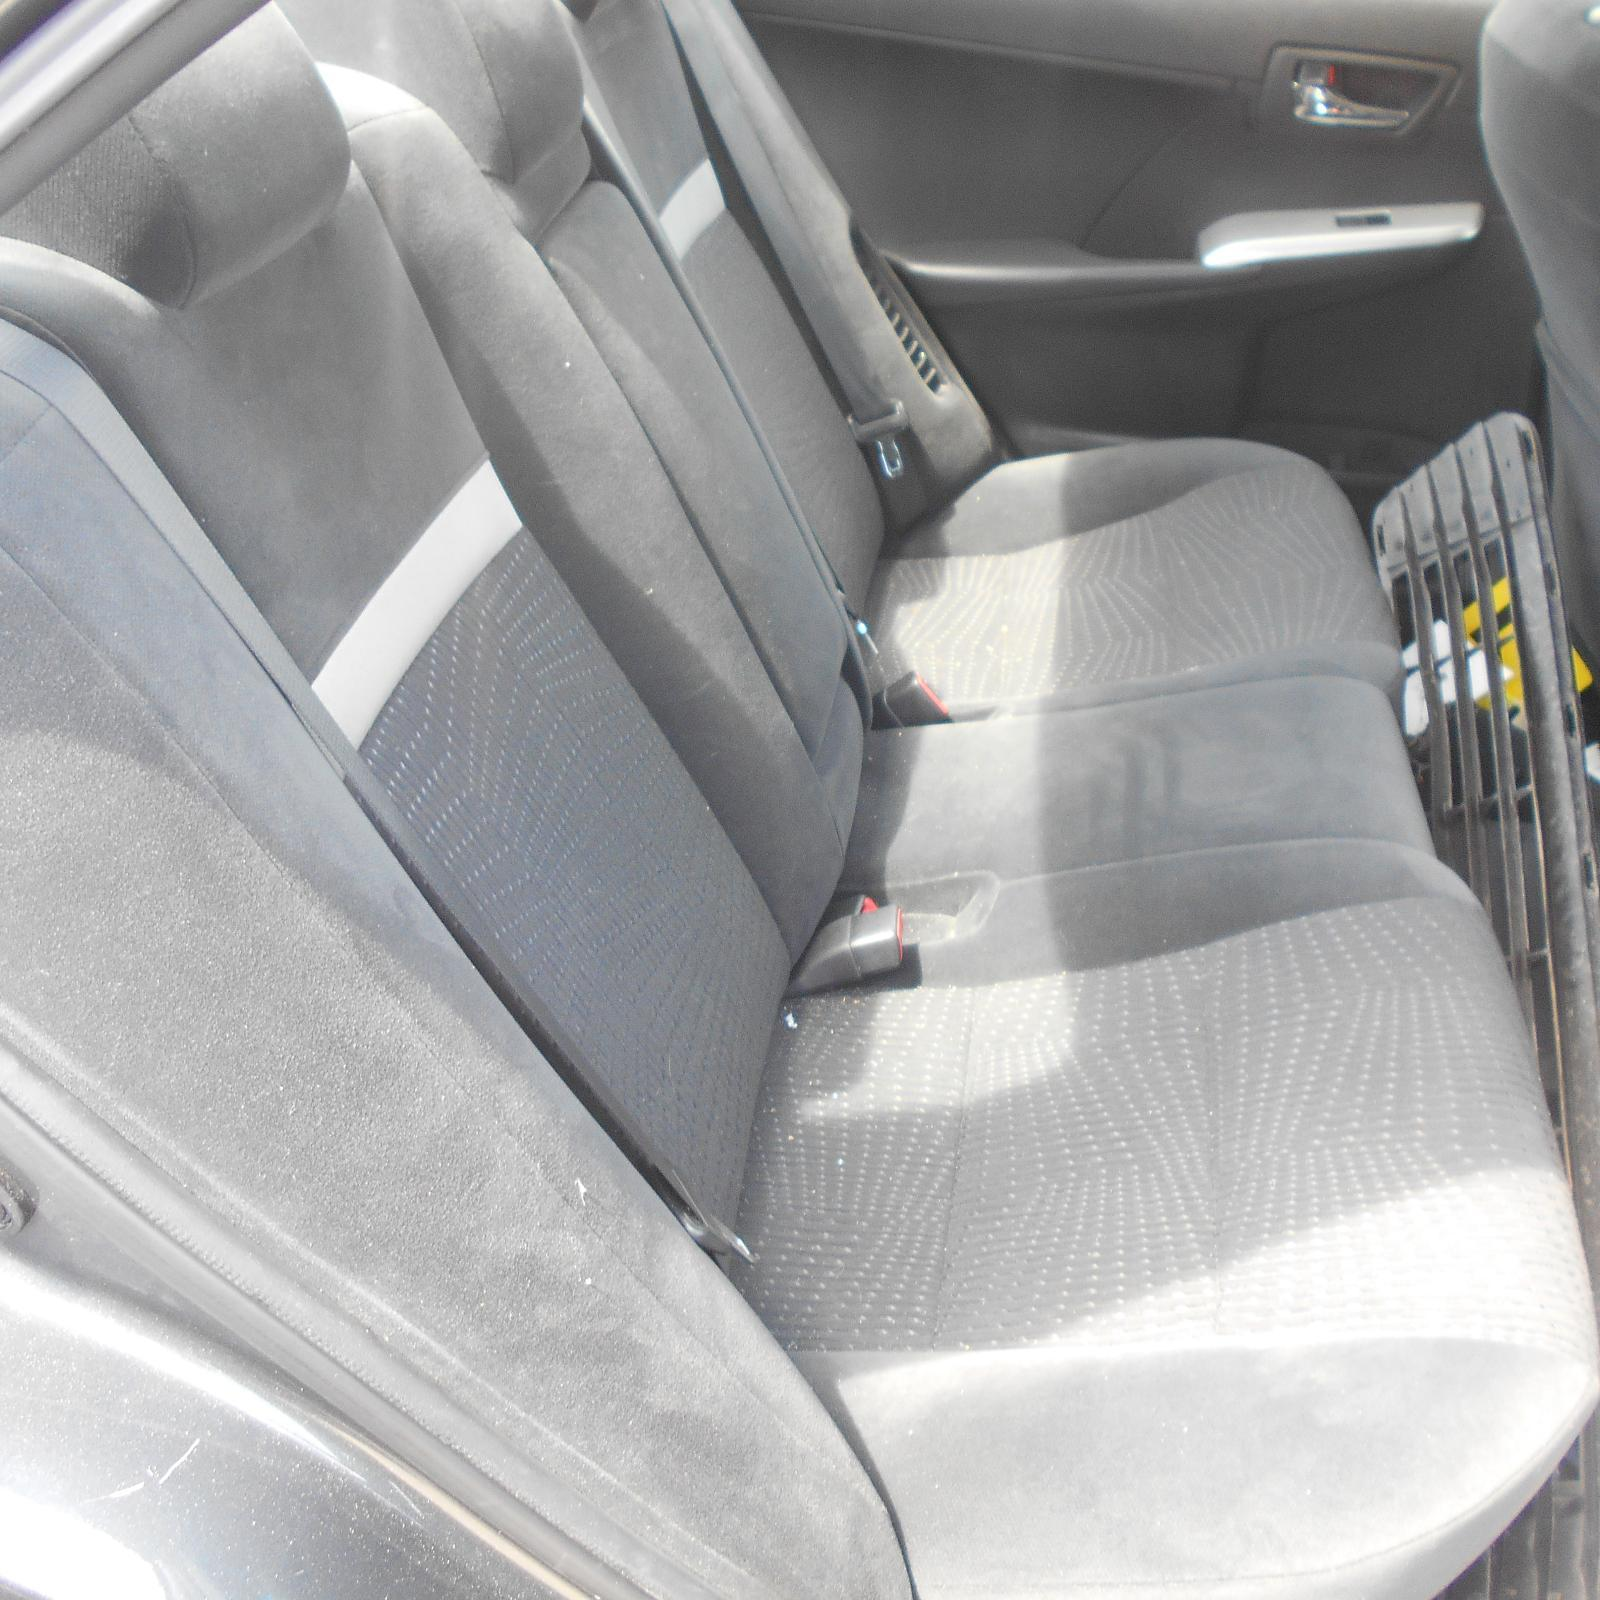 TOYOTA CAMRY, 2nd Seat (Rear Seat), CLOTH, HYBRID H, ACV50, 12/11-05/15